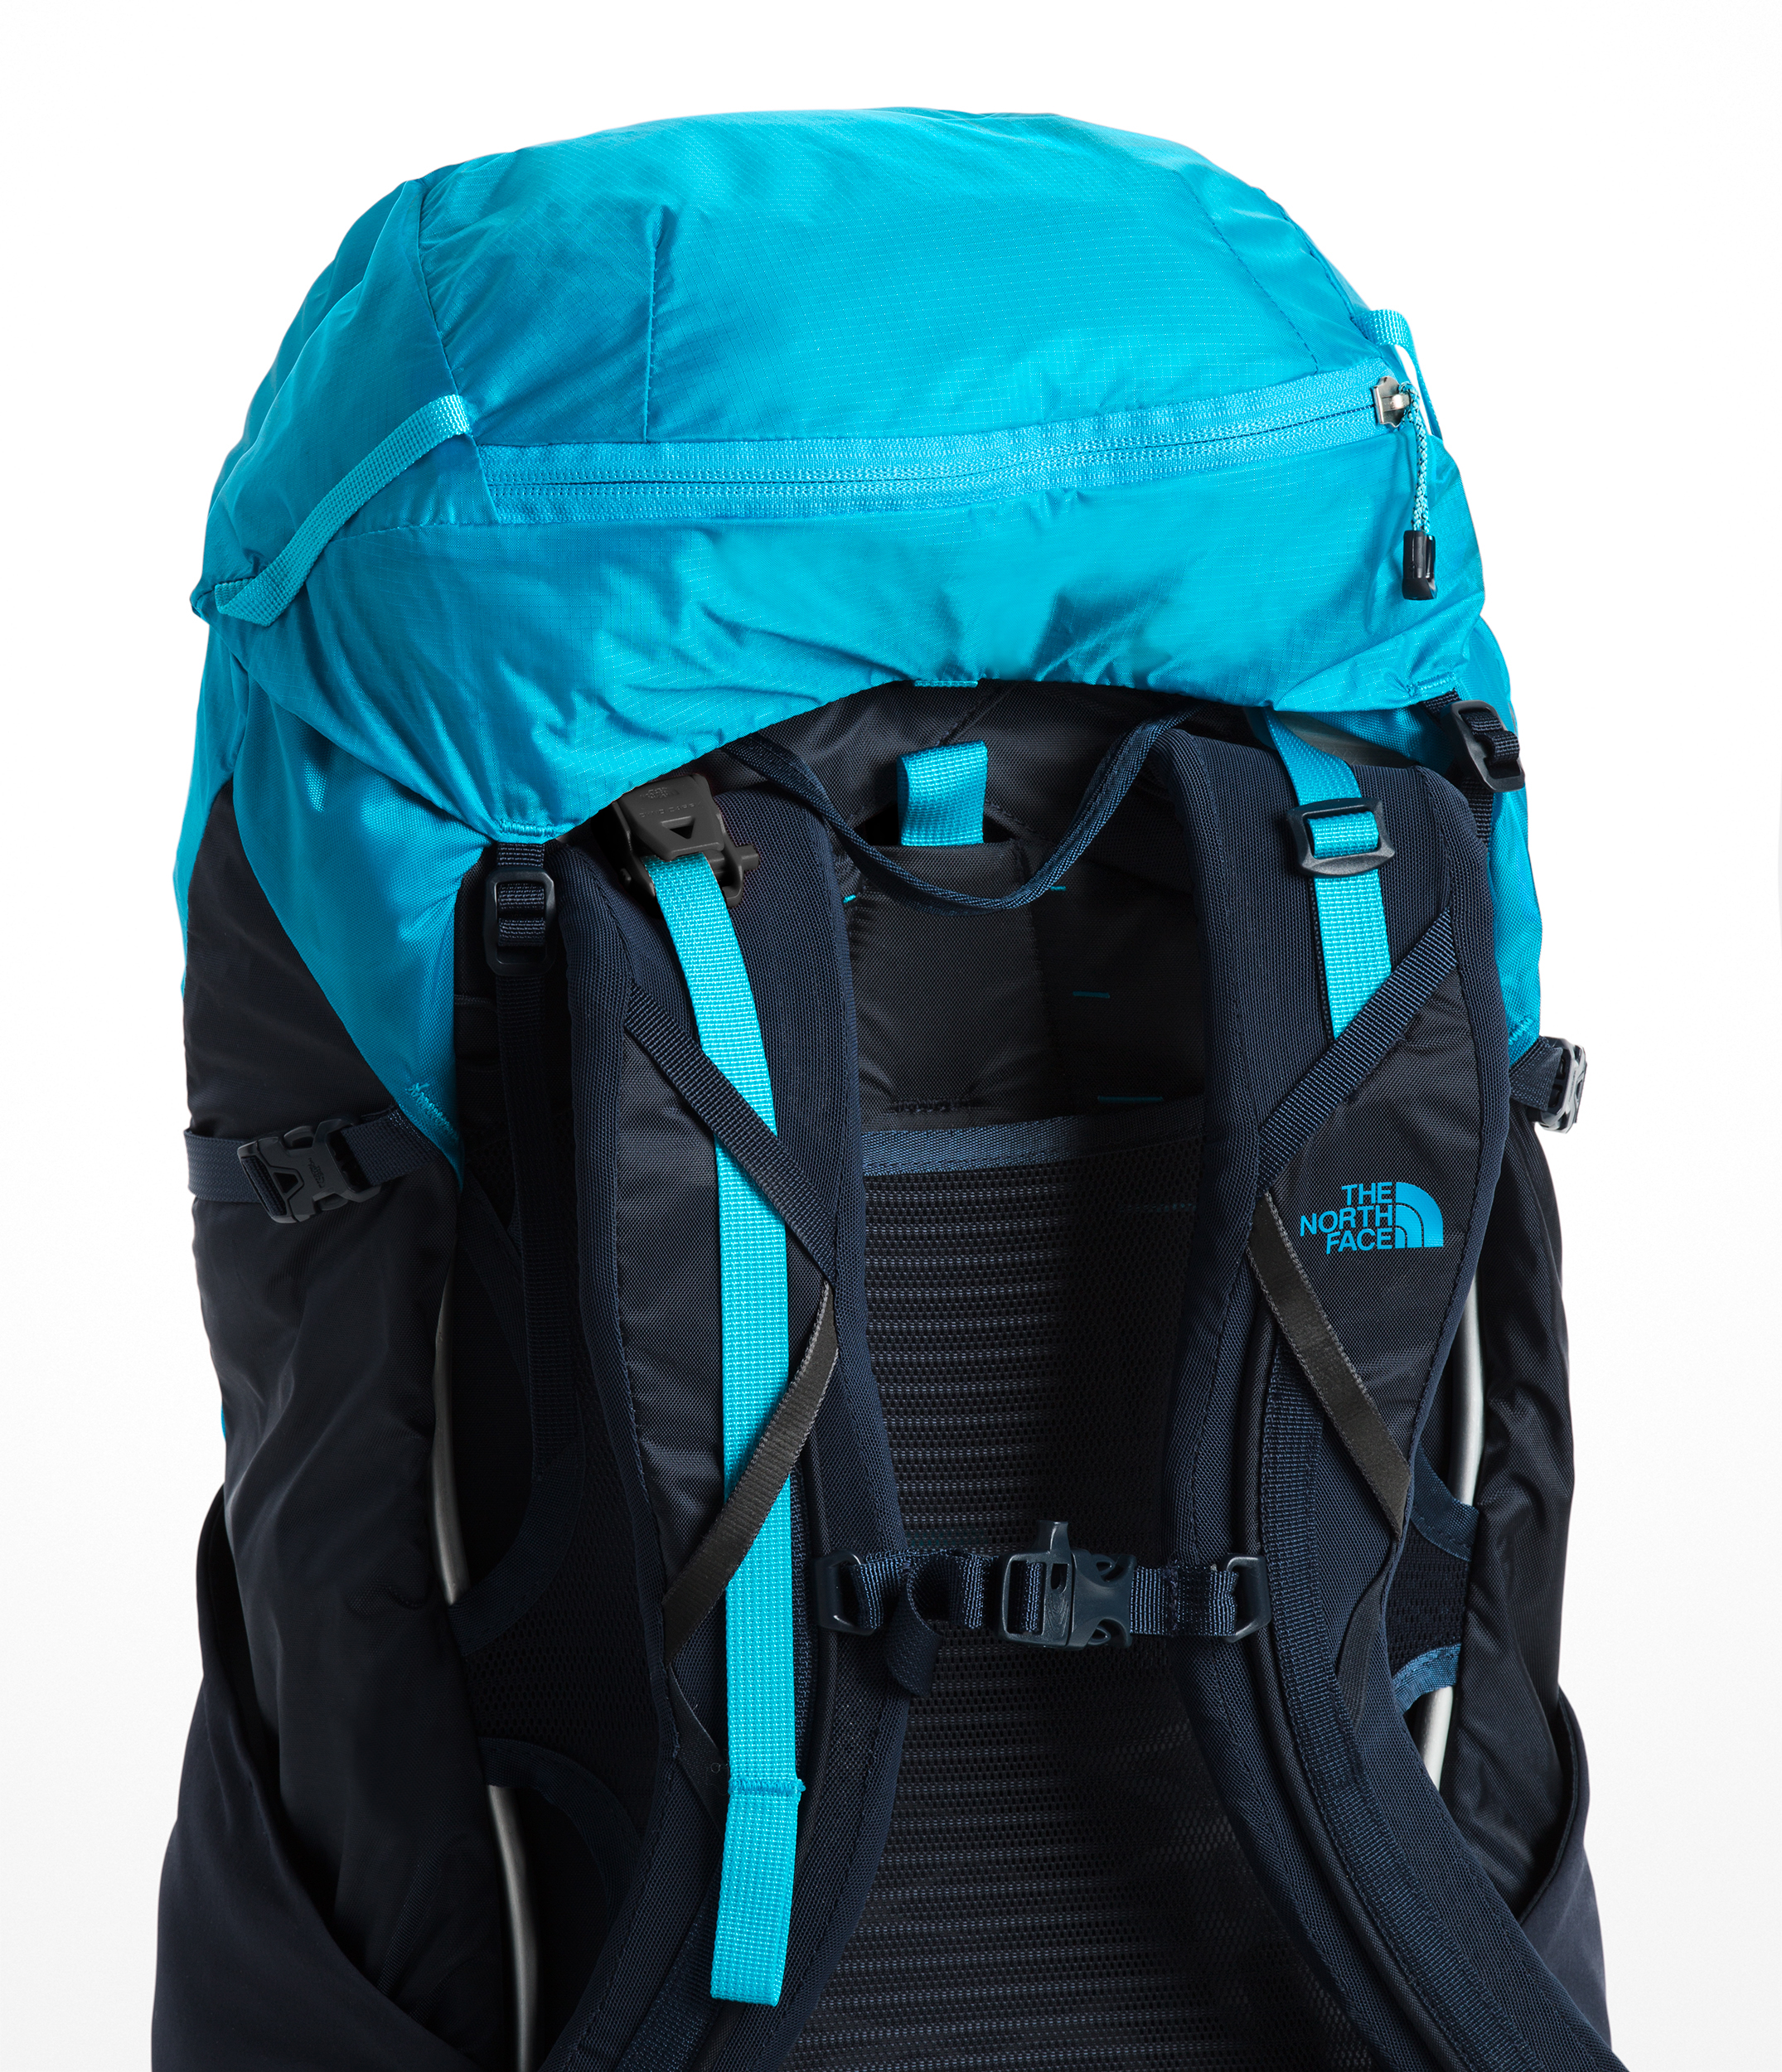 f09eee15f The North Face Hydra 38L Backpack - Women's